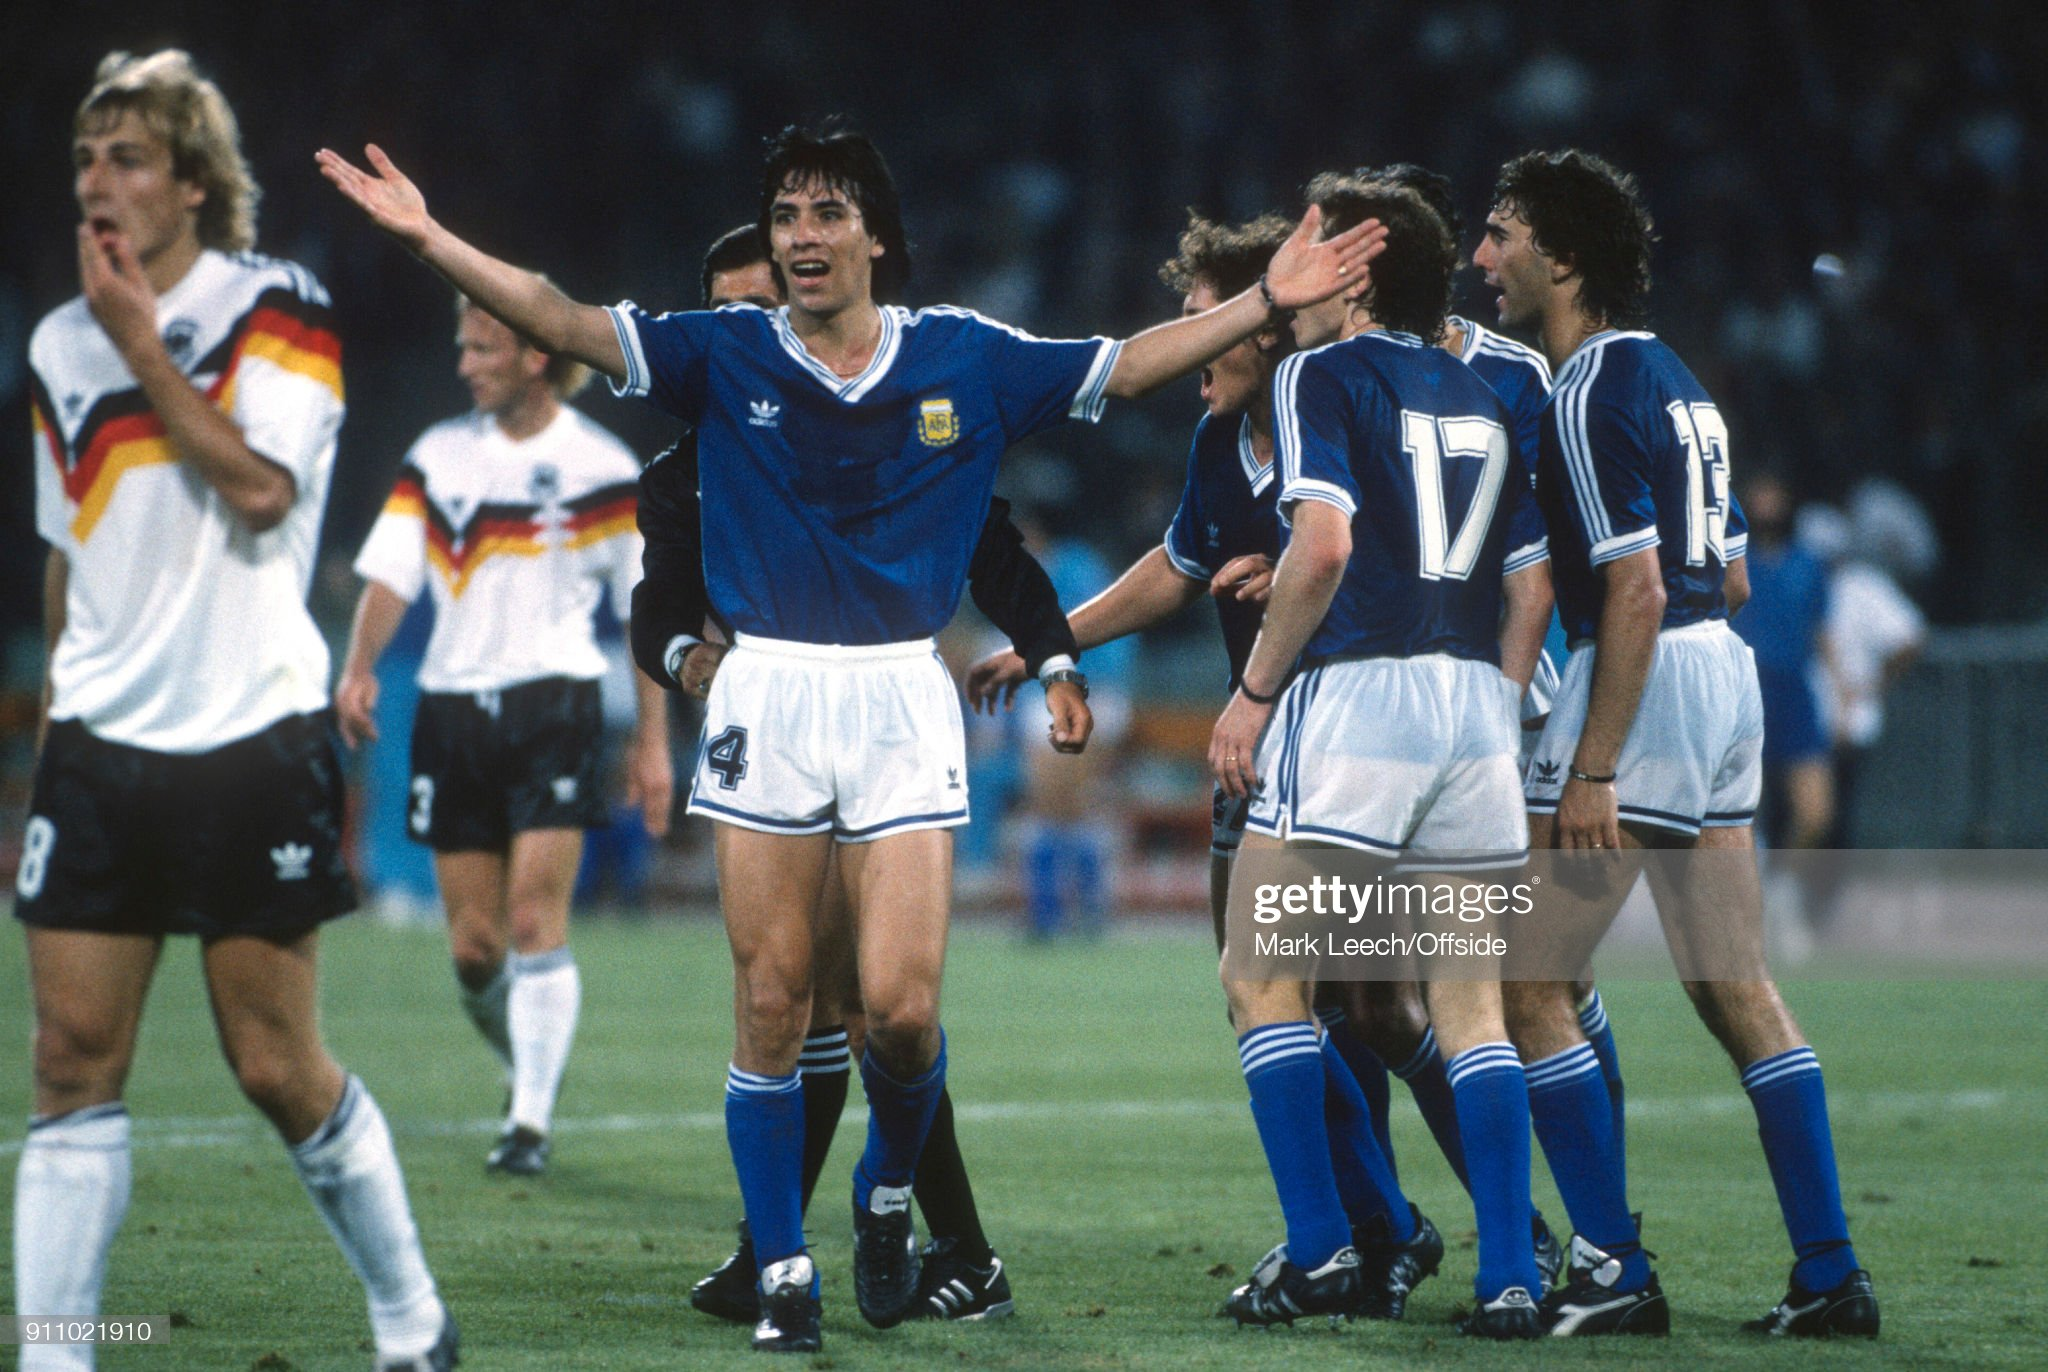 [Imagen: july-1990-rome-fifa-world-cup-final-arge...=2048x2048]